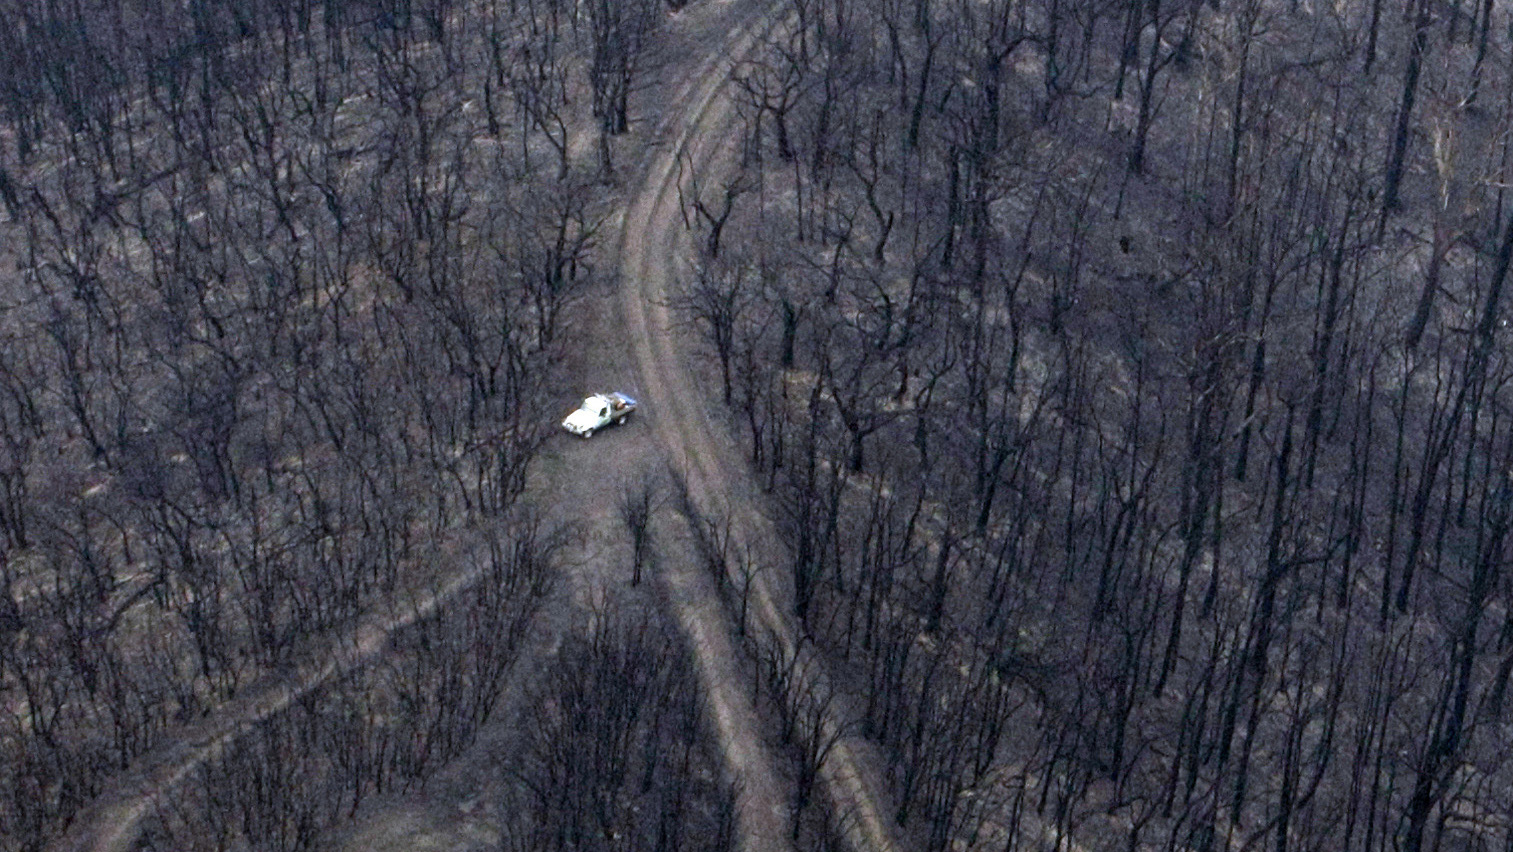 A vehicle is seen near the remains of a house destroyed by bushfires is seen in the town of Kinglake, 55km (34 miles) northeast of Melbourne February 8, 2009. Australian bushfires have killed 76 people and burnt hundreds of homes in the worst fire disaster in three decades, as a heatwave and strong winds sent sheets of flame racing through towns and farmland near Melbourne.